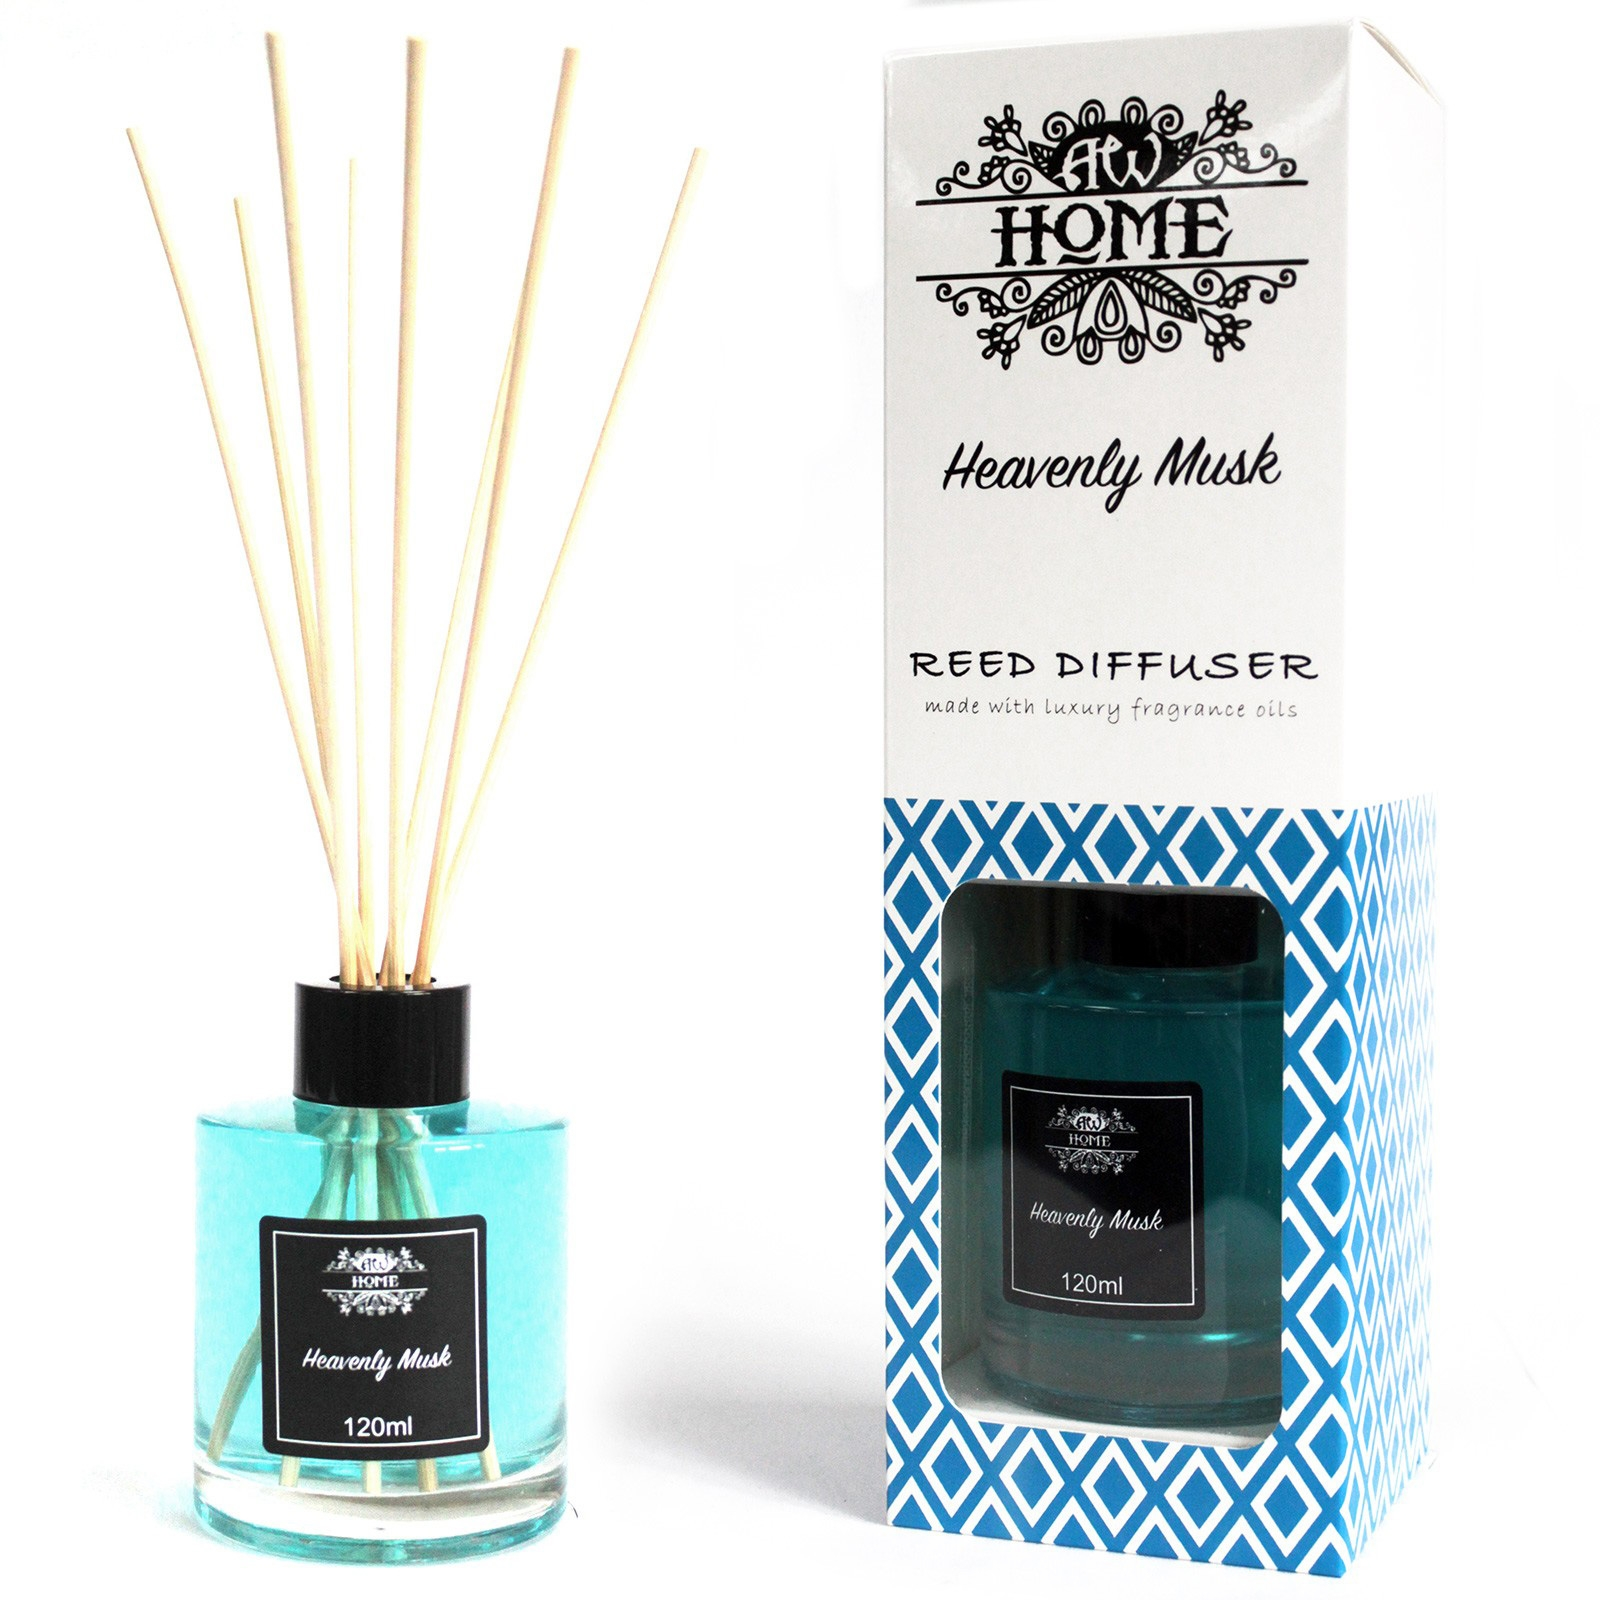 Heavenly Musk Reed Diffuser 120ml